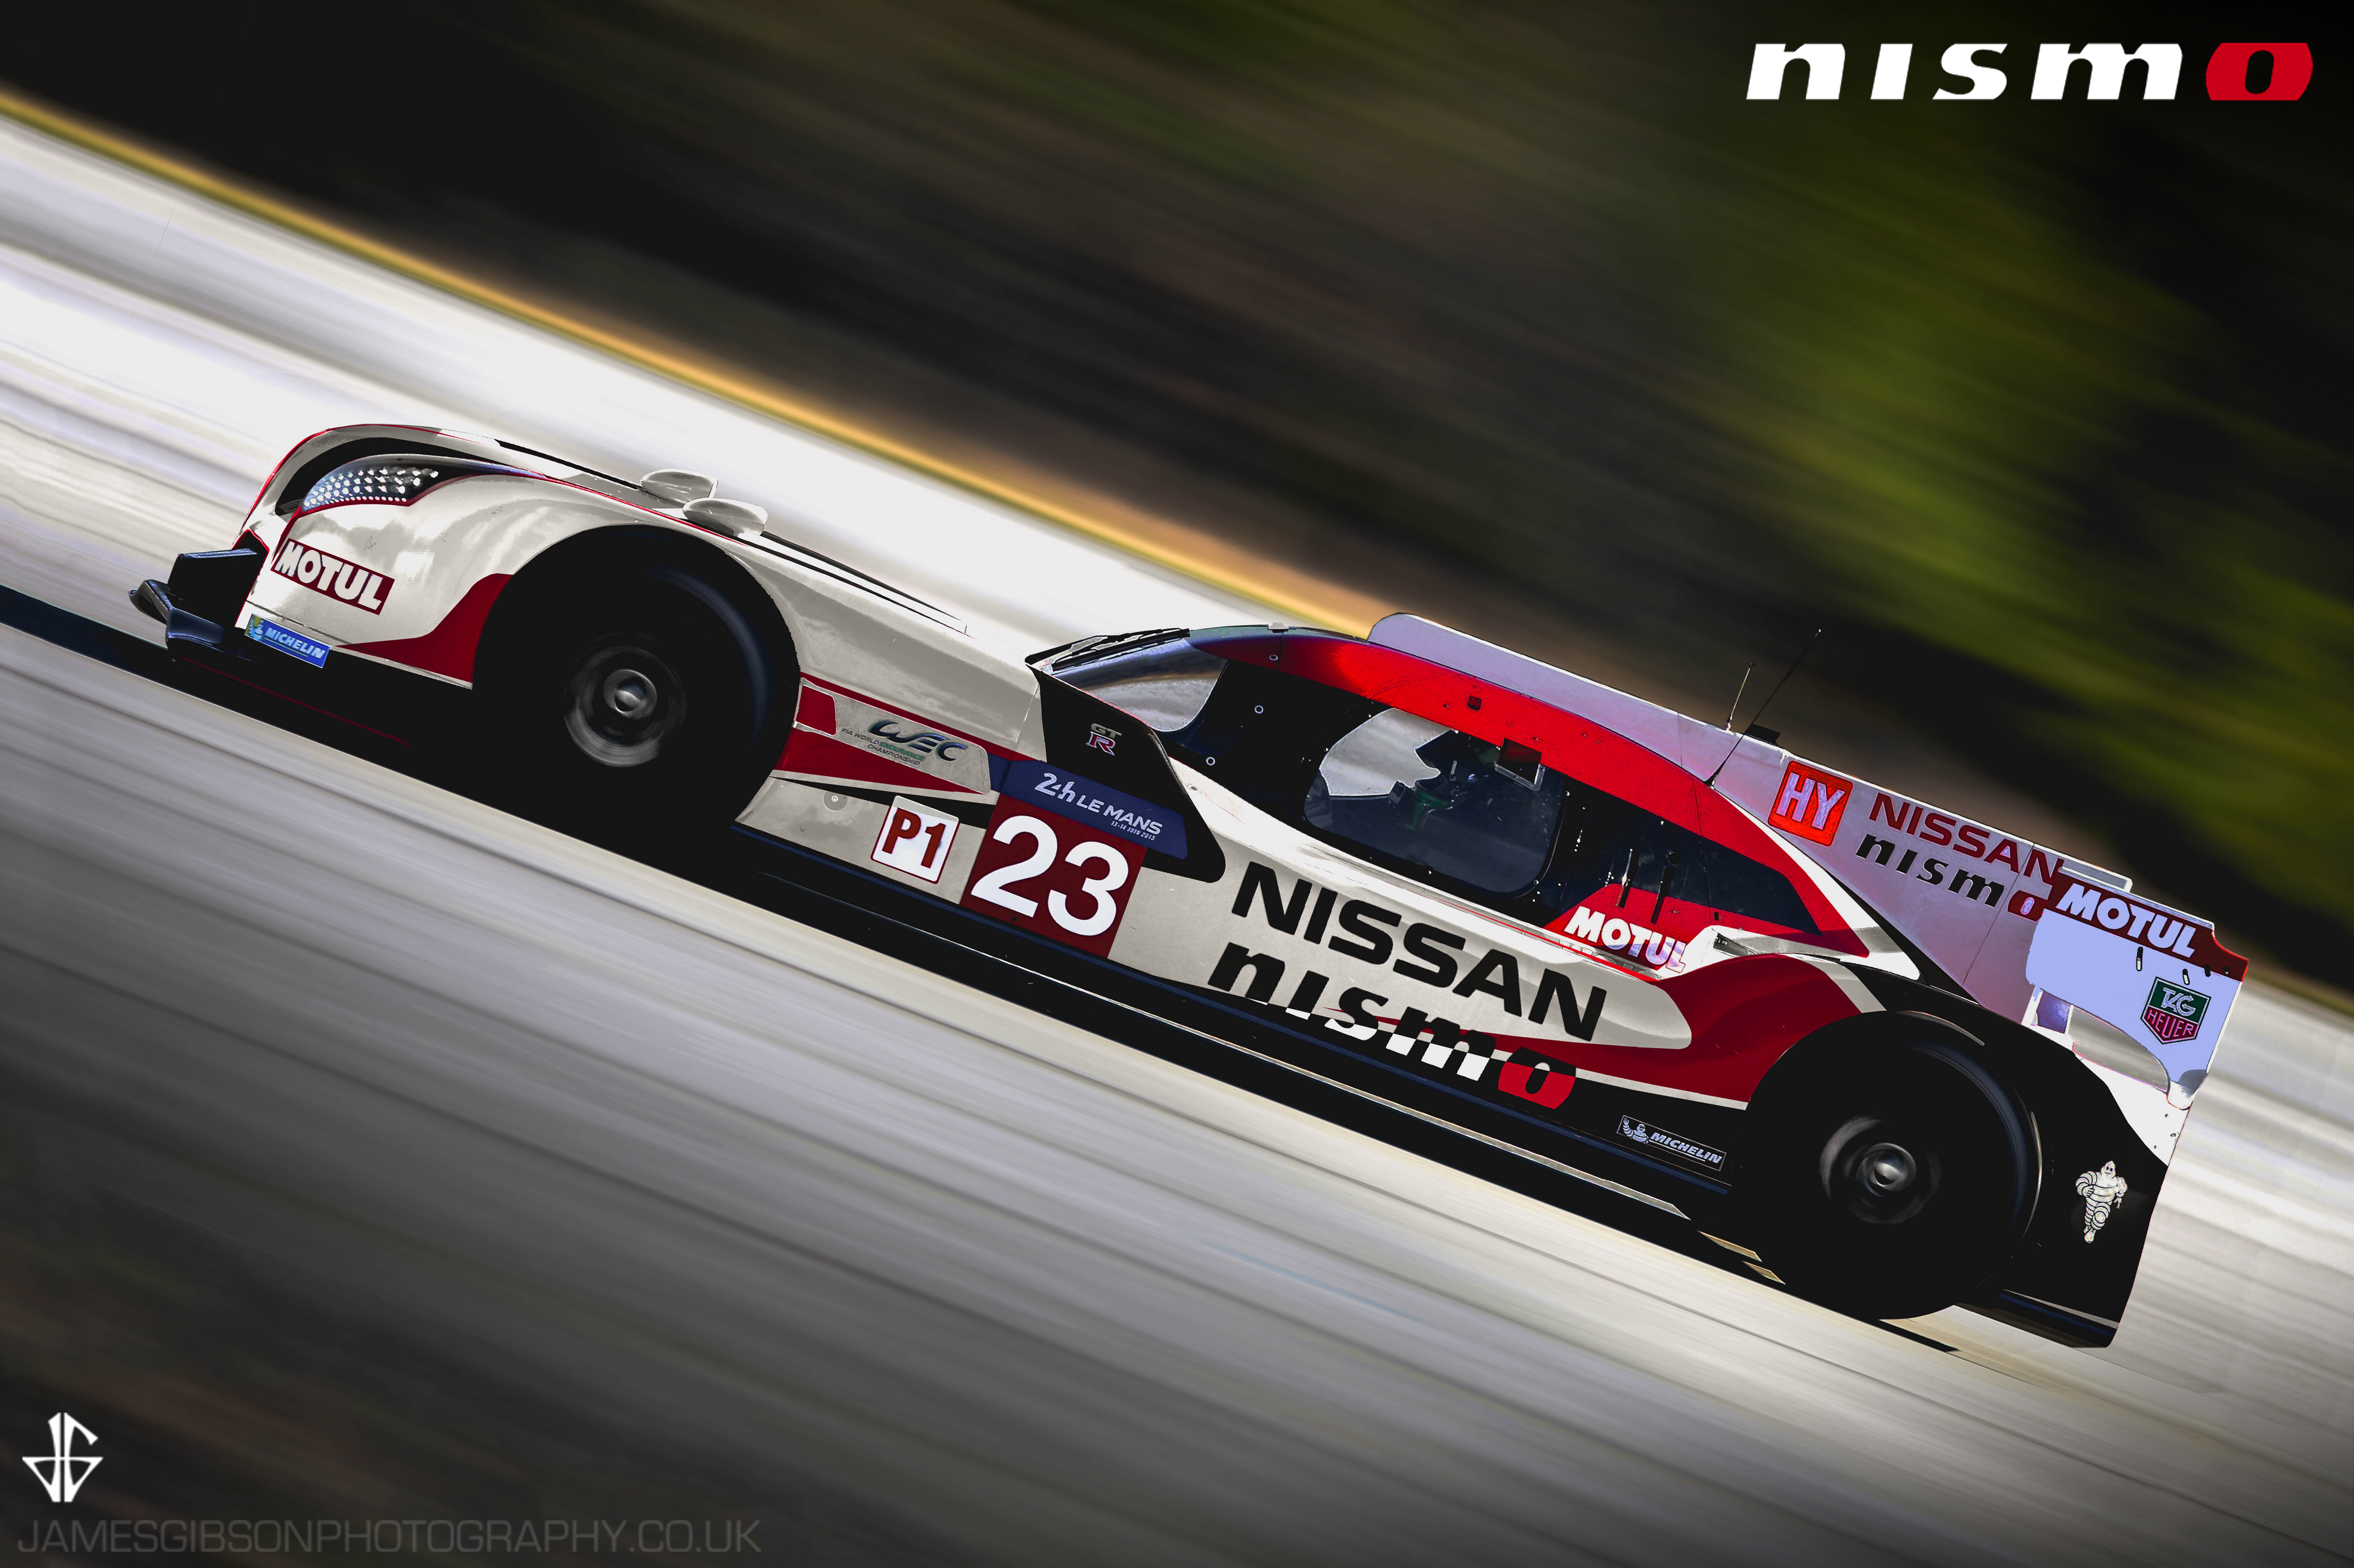 nismo2 version 2 nismo livery james gibson photography